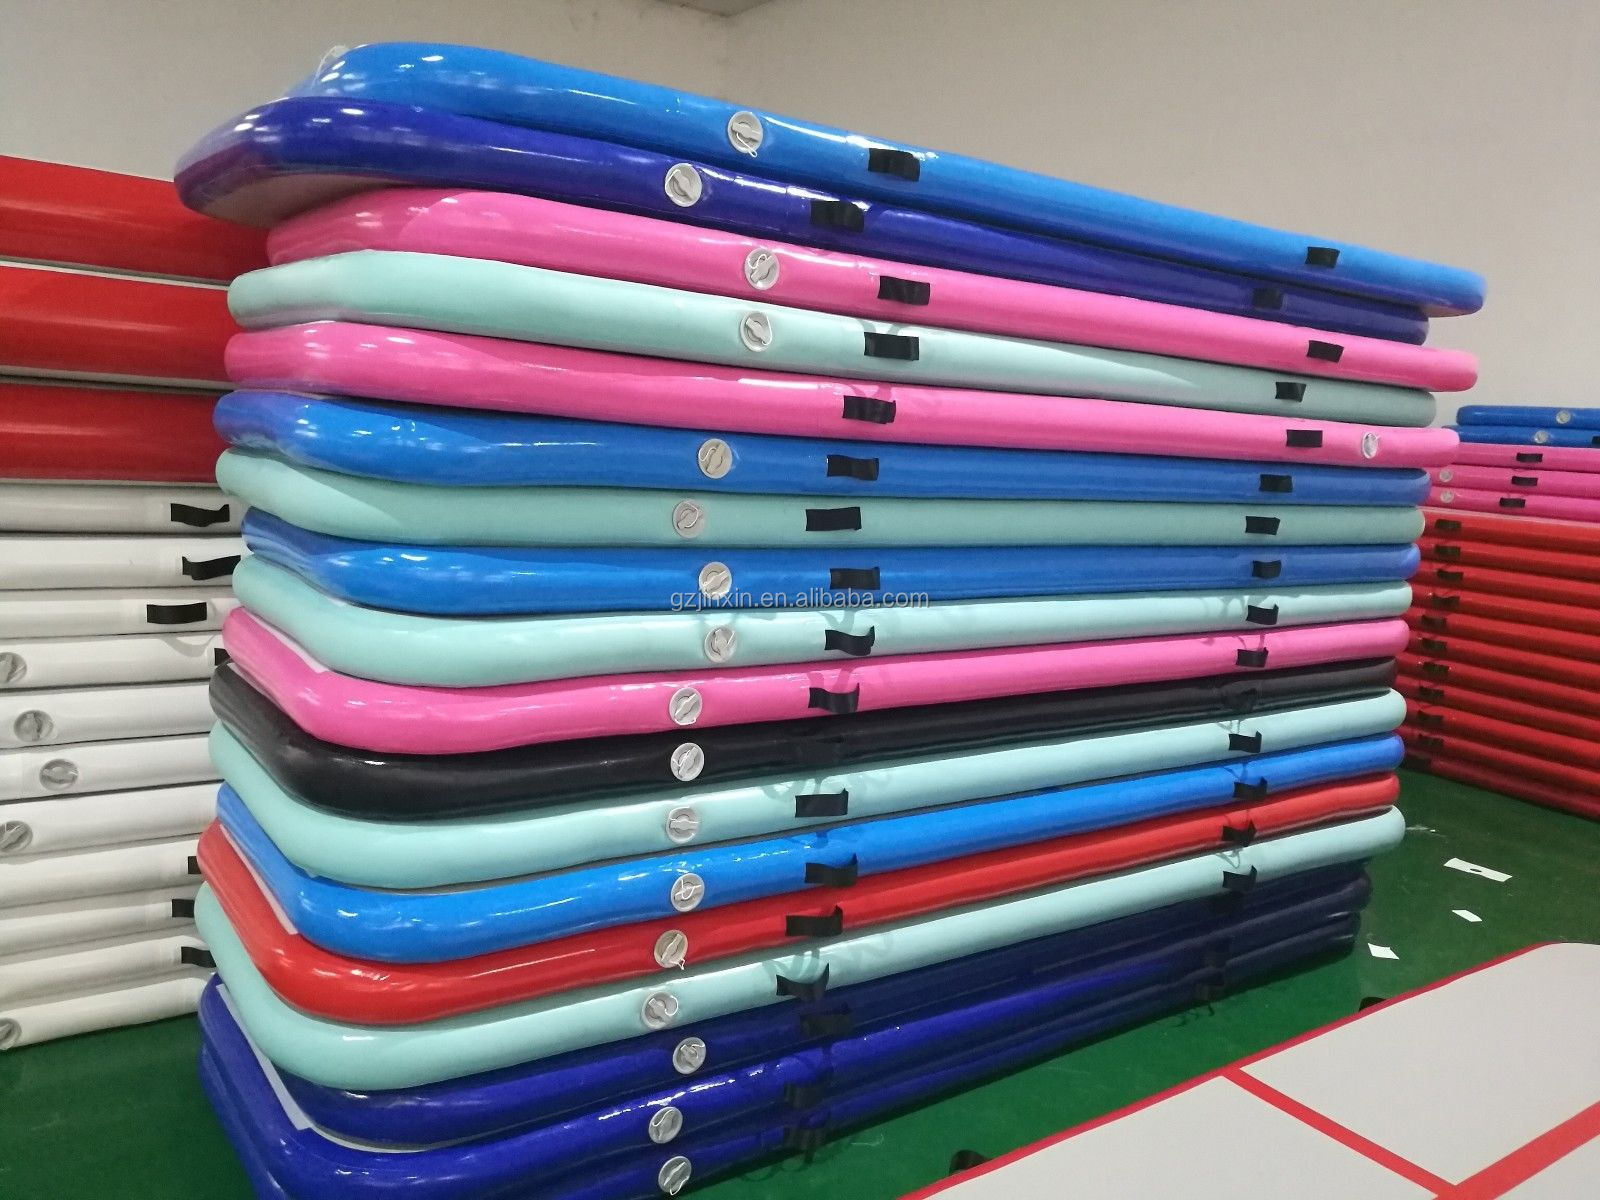 Gymnastics Fitness Equipment Inflatable Airtrack Tumble Yoga Taekwondo Mats 6m Outdoor Used Gym Mat For Tumbling